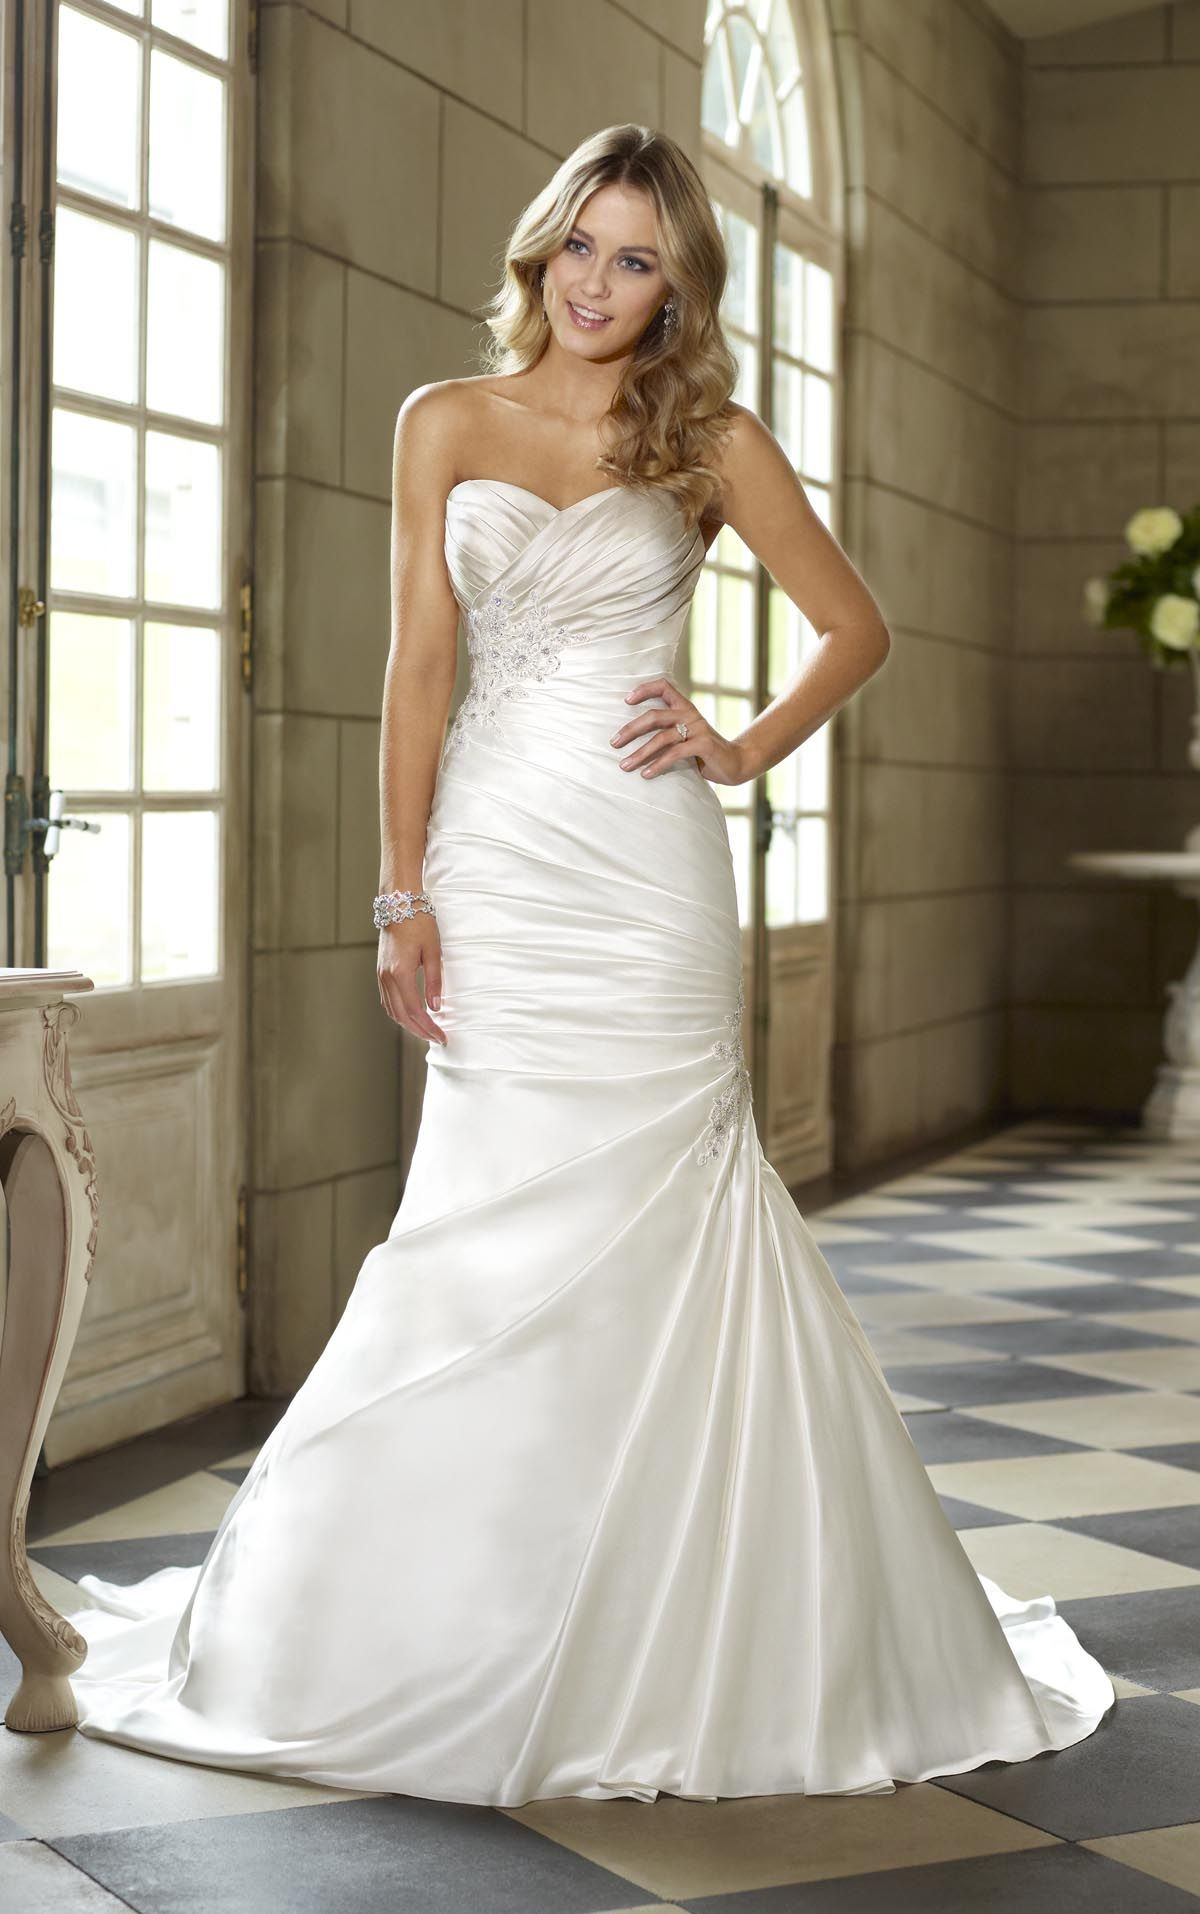 Best 25+ Ruched wedding dress ideas on Pinterest | Sweetheart ...